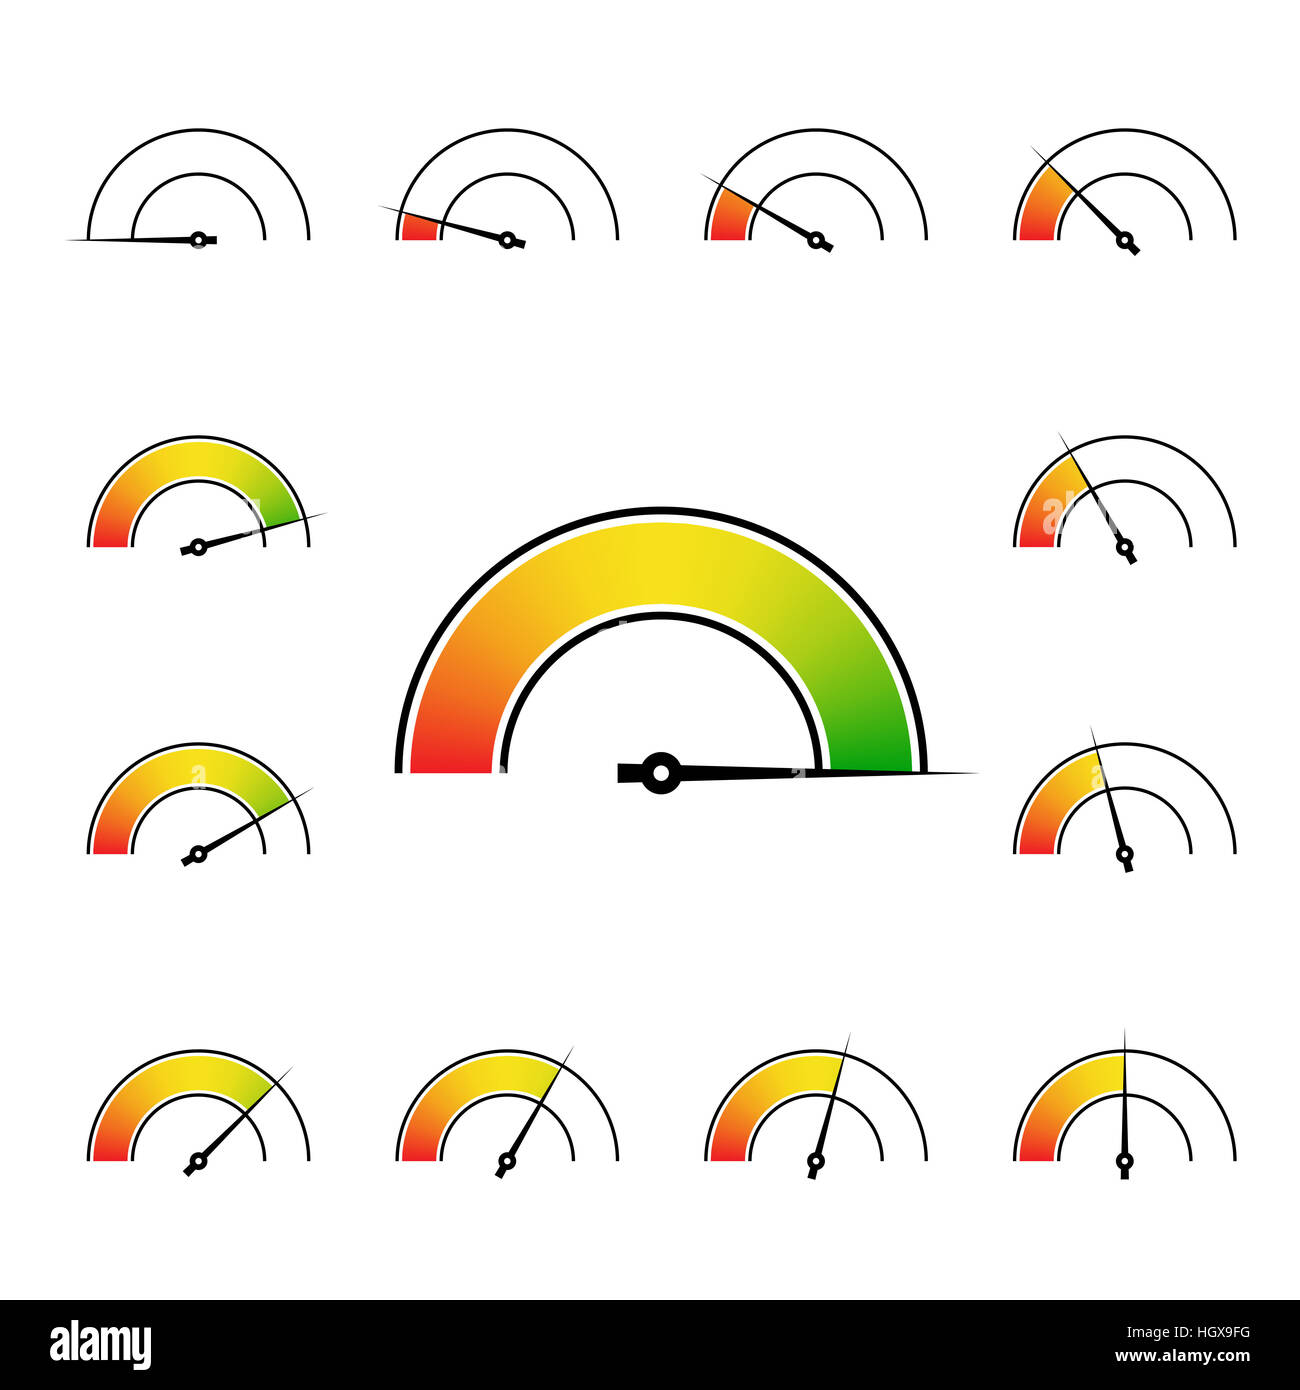 meter signs infographic gauge element from red to green illustration - Stock Image